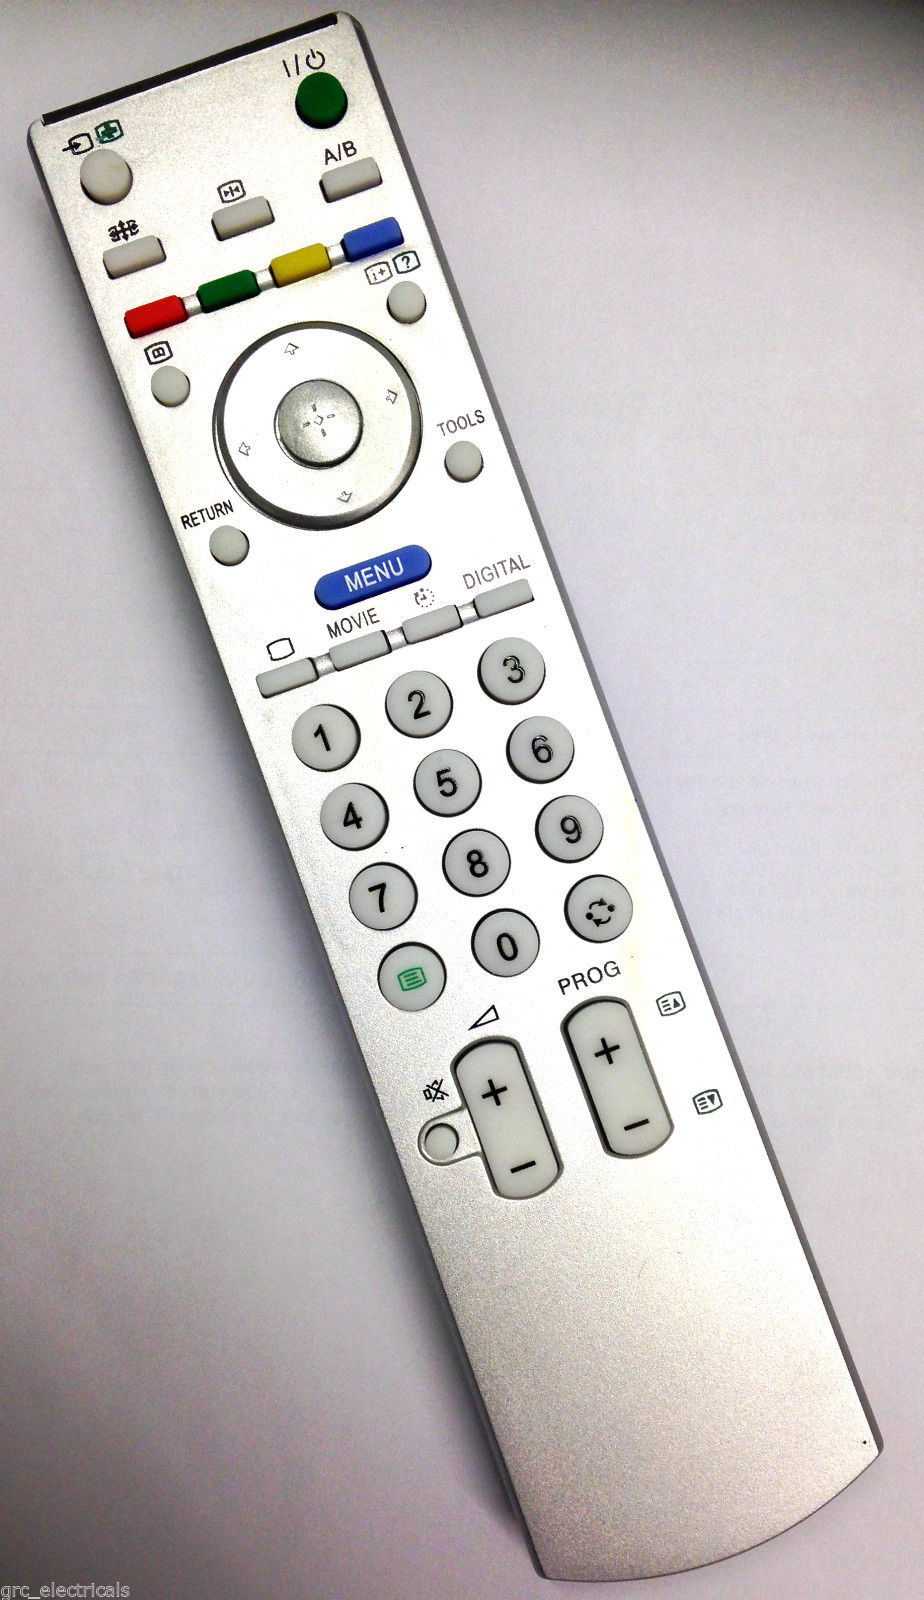 sony tv remote silver. new remote control for sony tv s rm-ed008 kdl-40t3500 kdl-40u2500 kdl-40v2500 tv silver